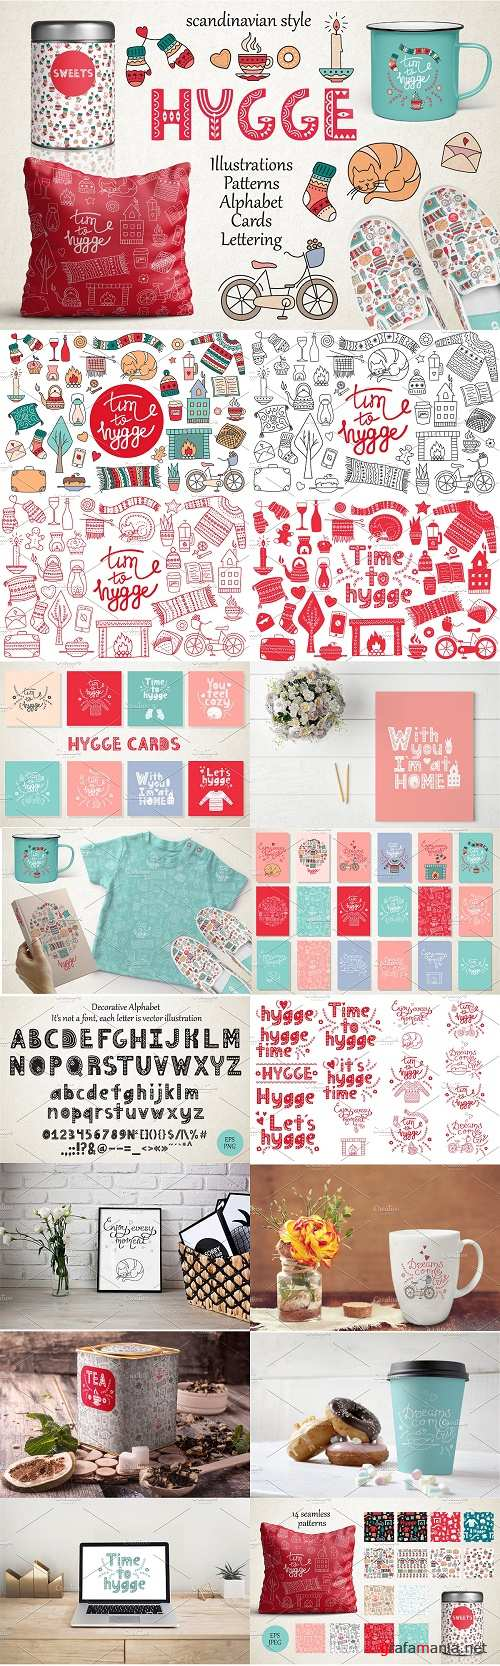 Hygge Collection - 2265555